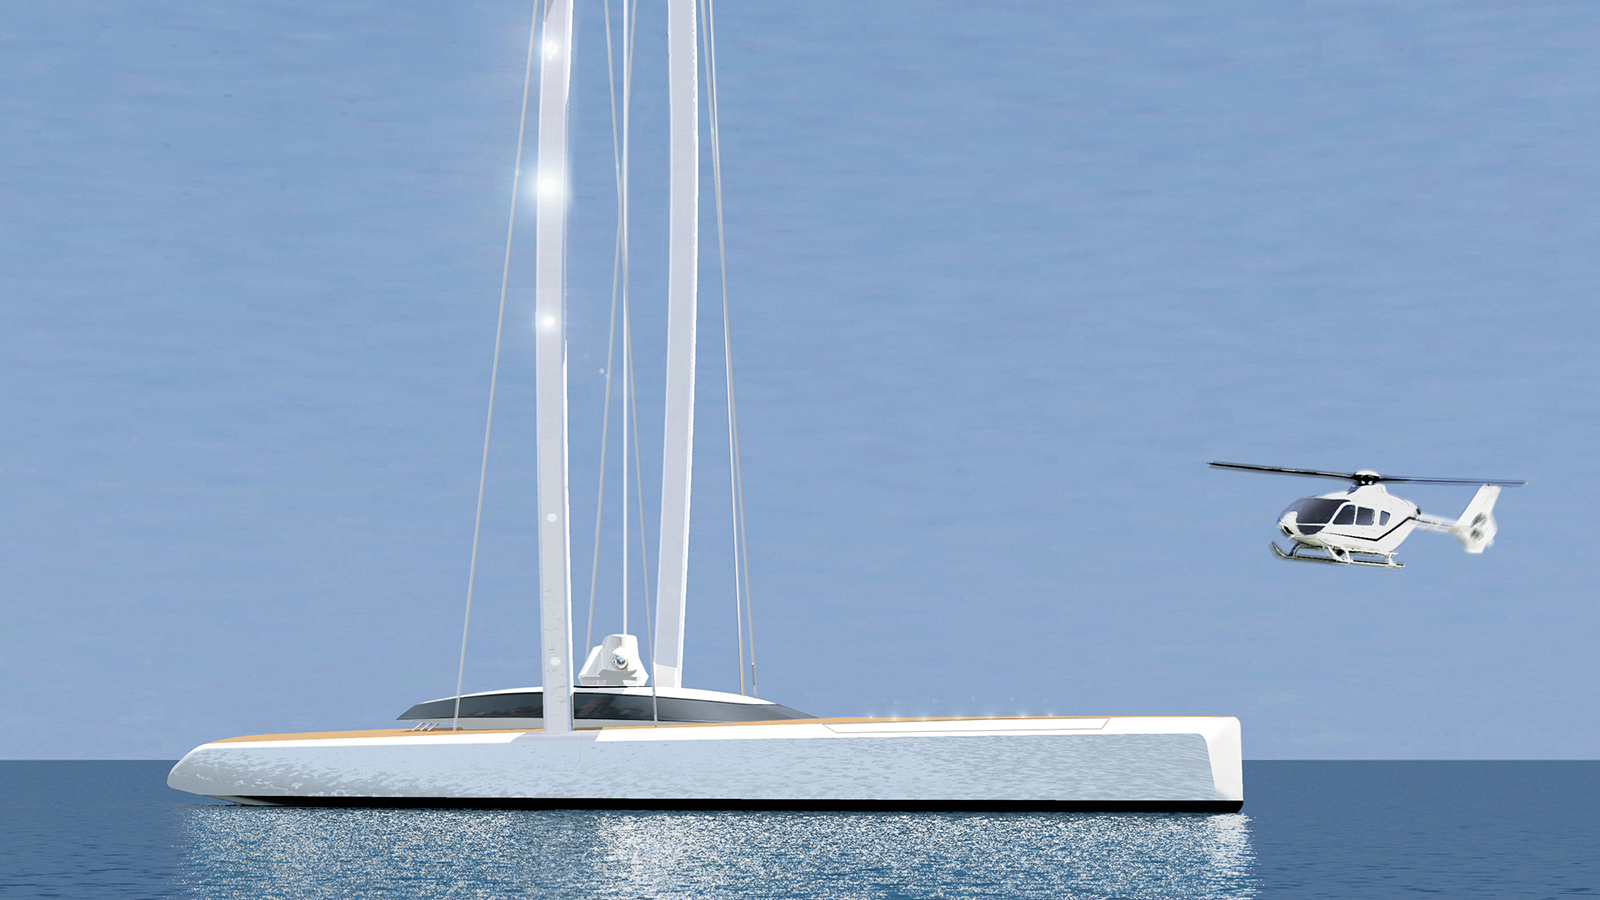 helicopter-operations-on-the-56-metre-aero-sail-yacht-concept